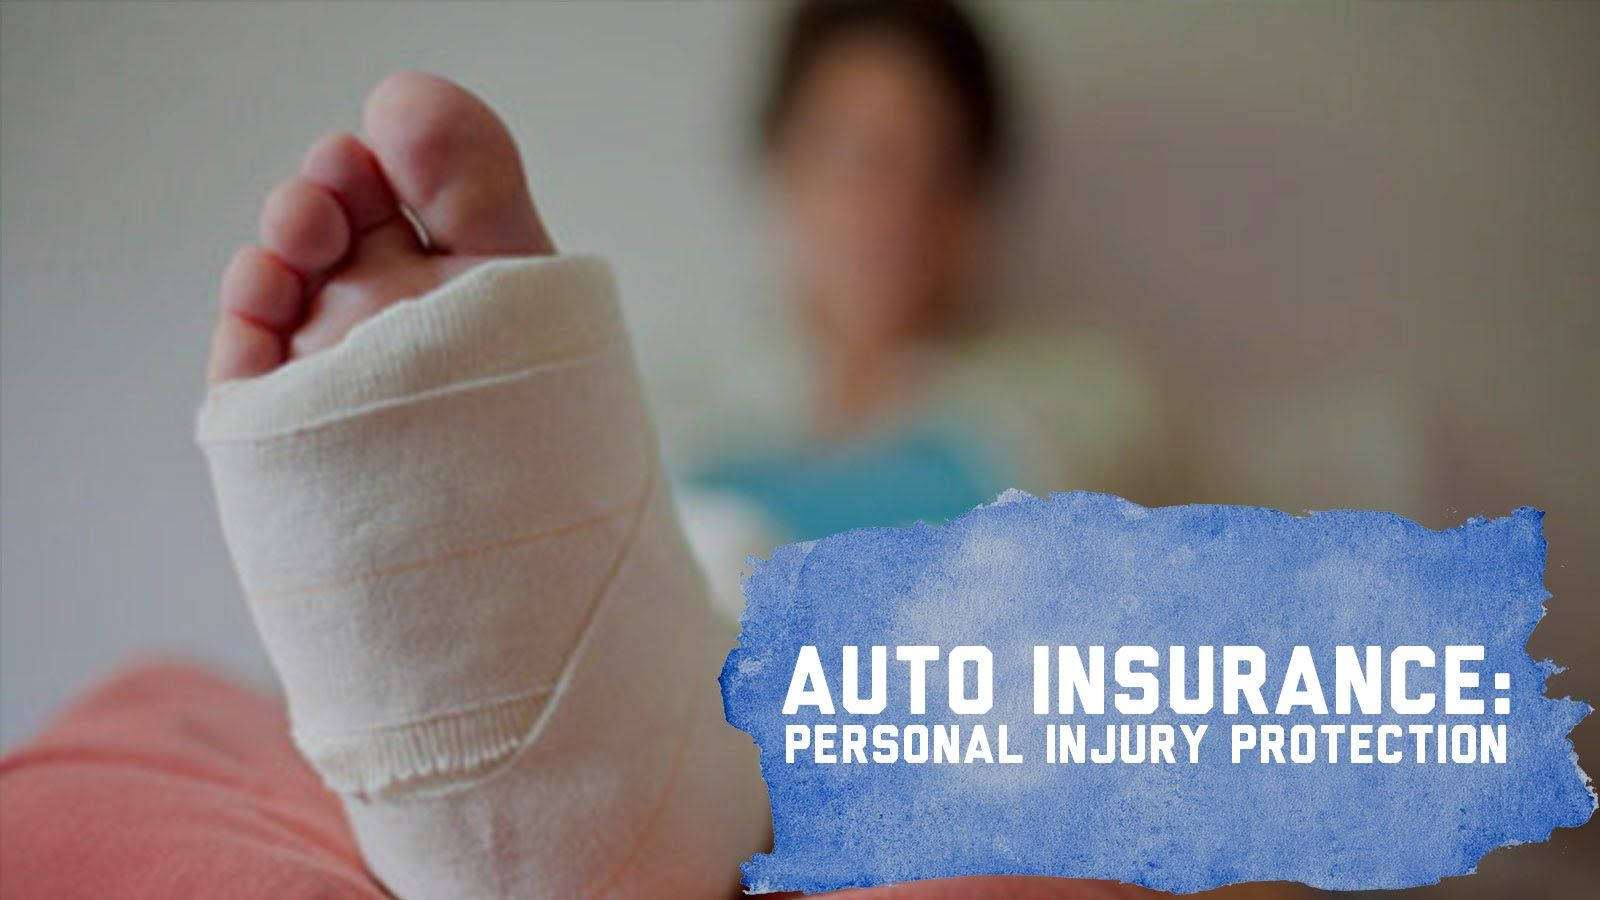 Find Lowest Price Auto Insurance Personal Injury Protection Car